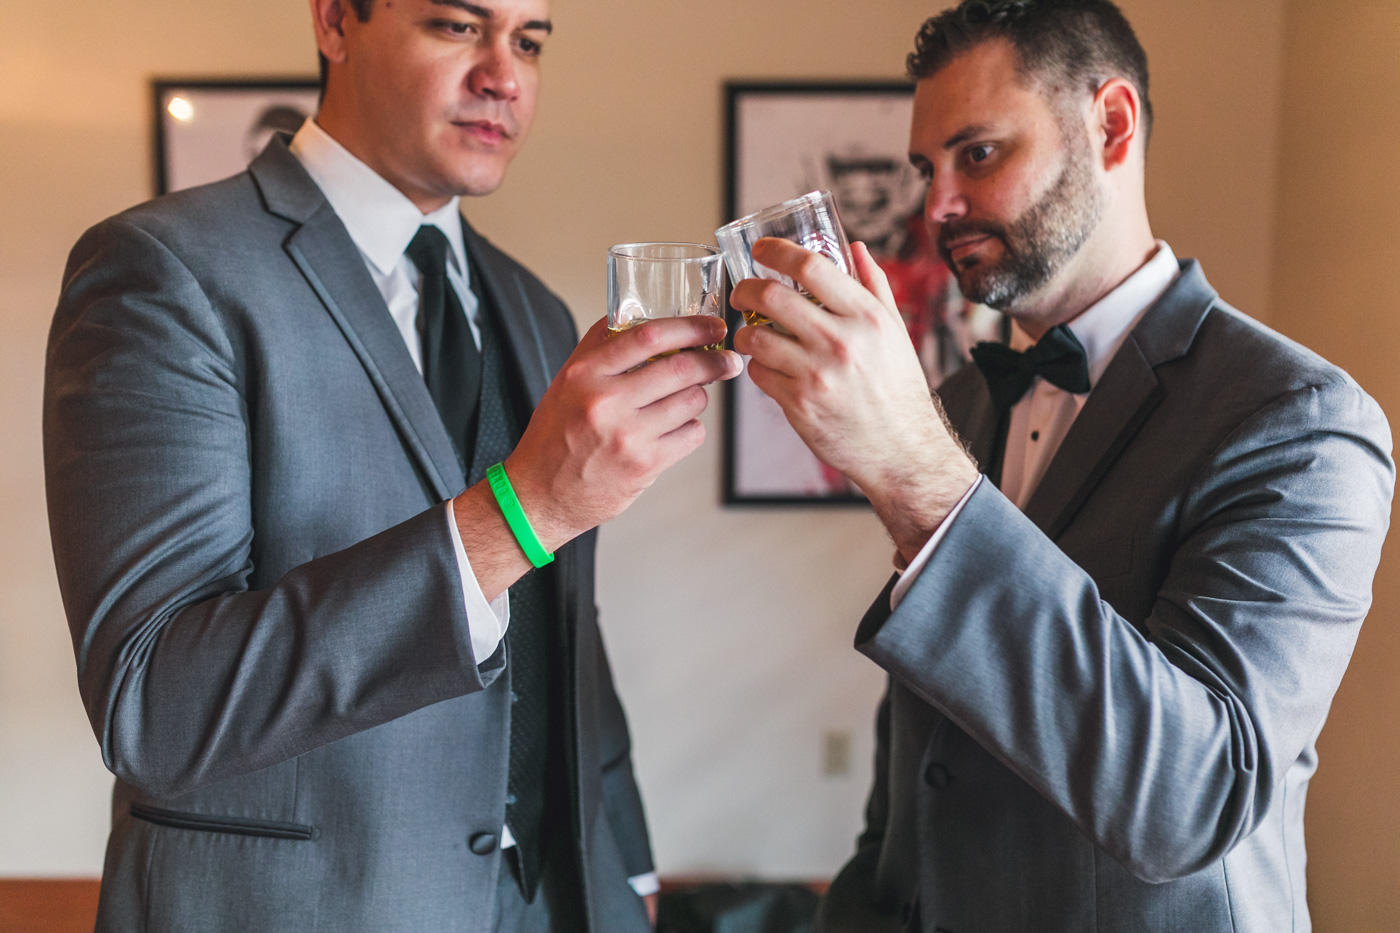 groom-and-best-man-share-drink